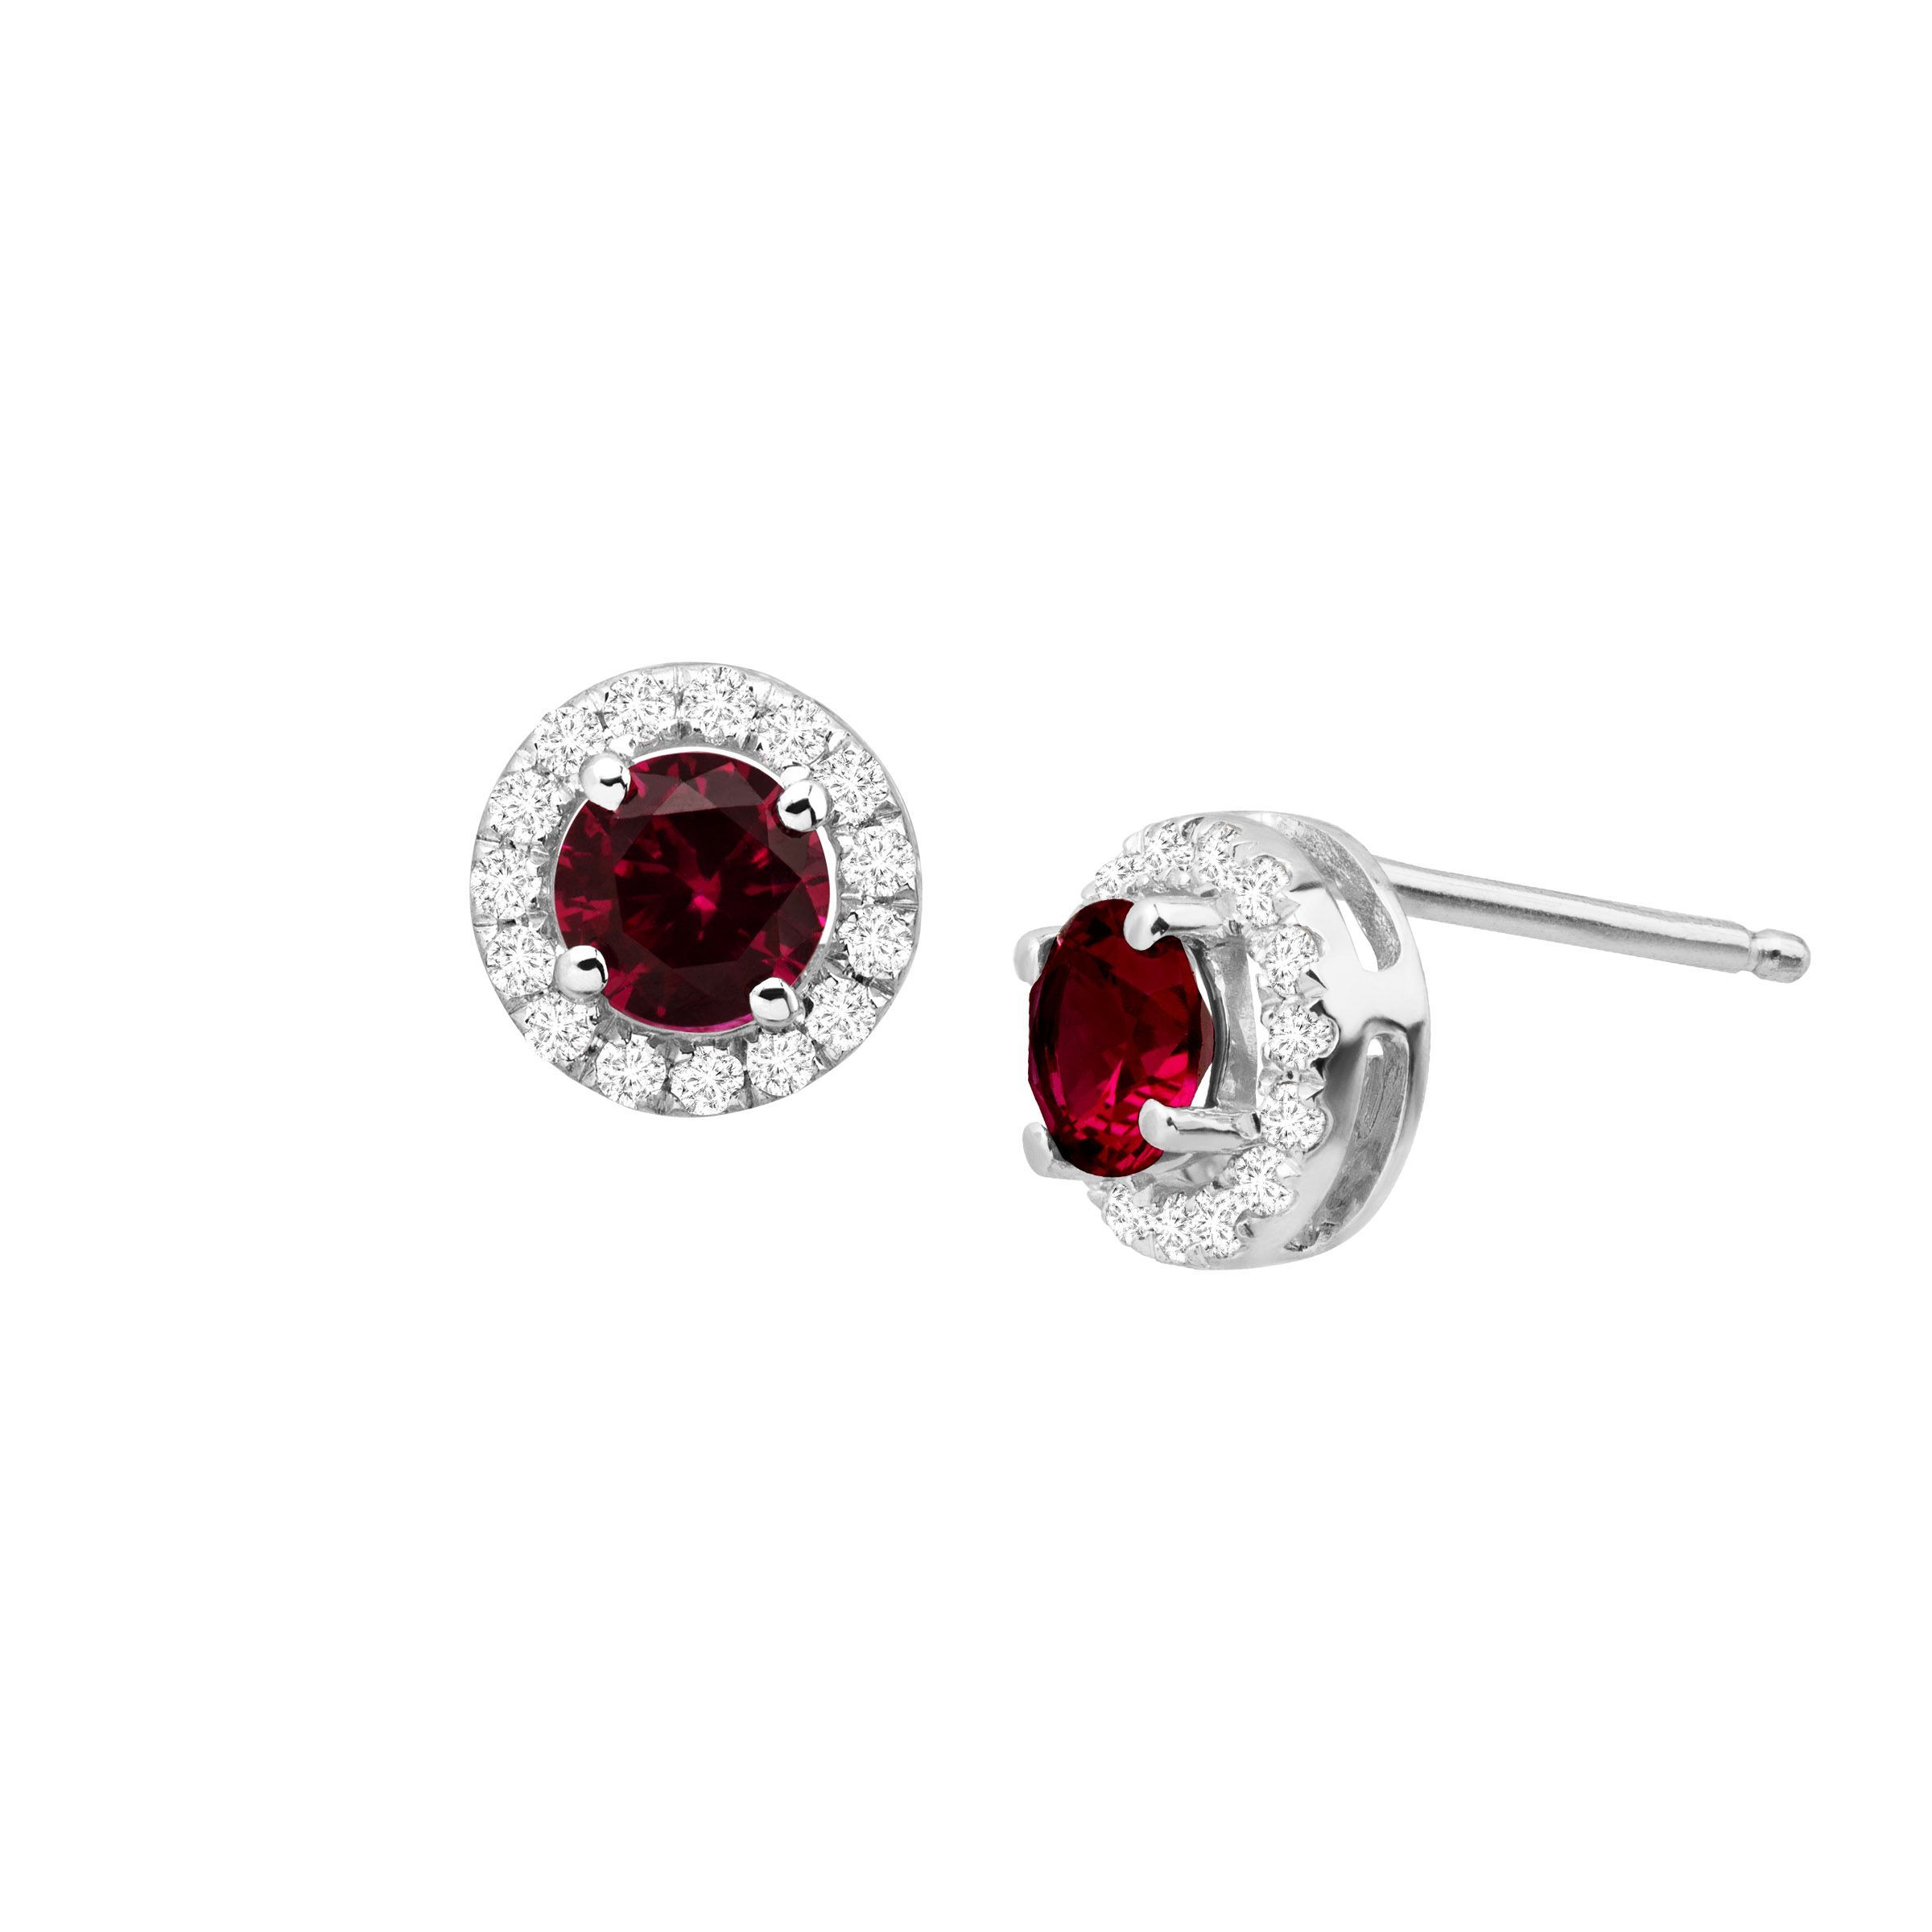 e2b68fe38 Details about 7/8 ct Created Ruby & White Sapphire Halo Stud Earrings in  10K White Gold